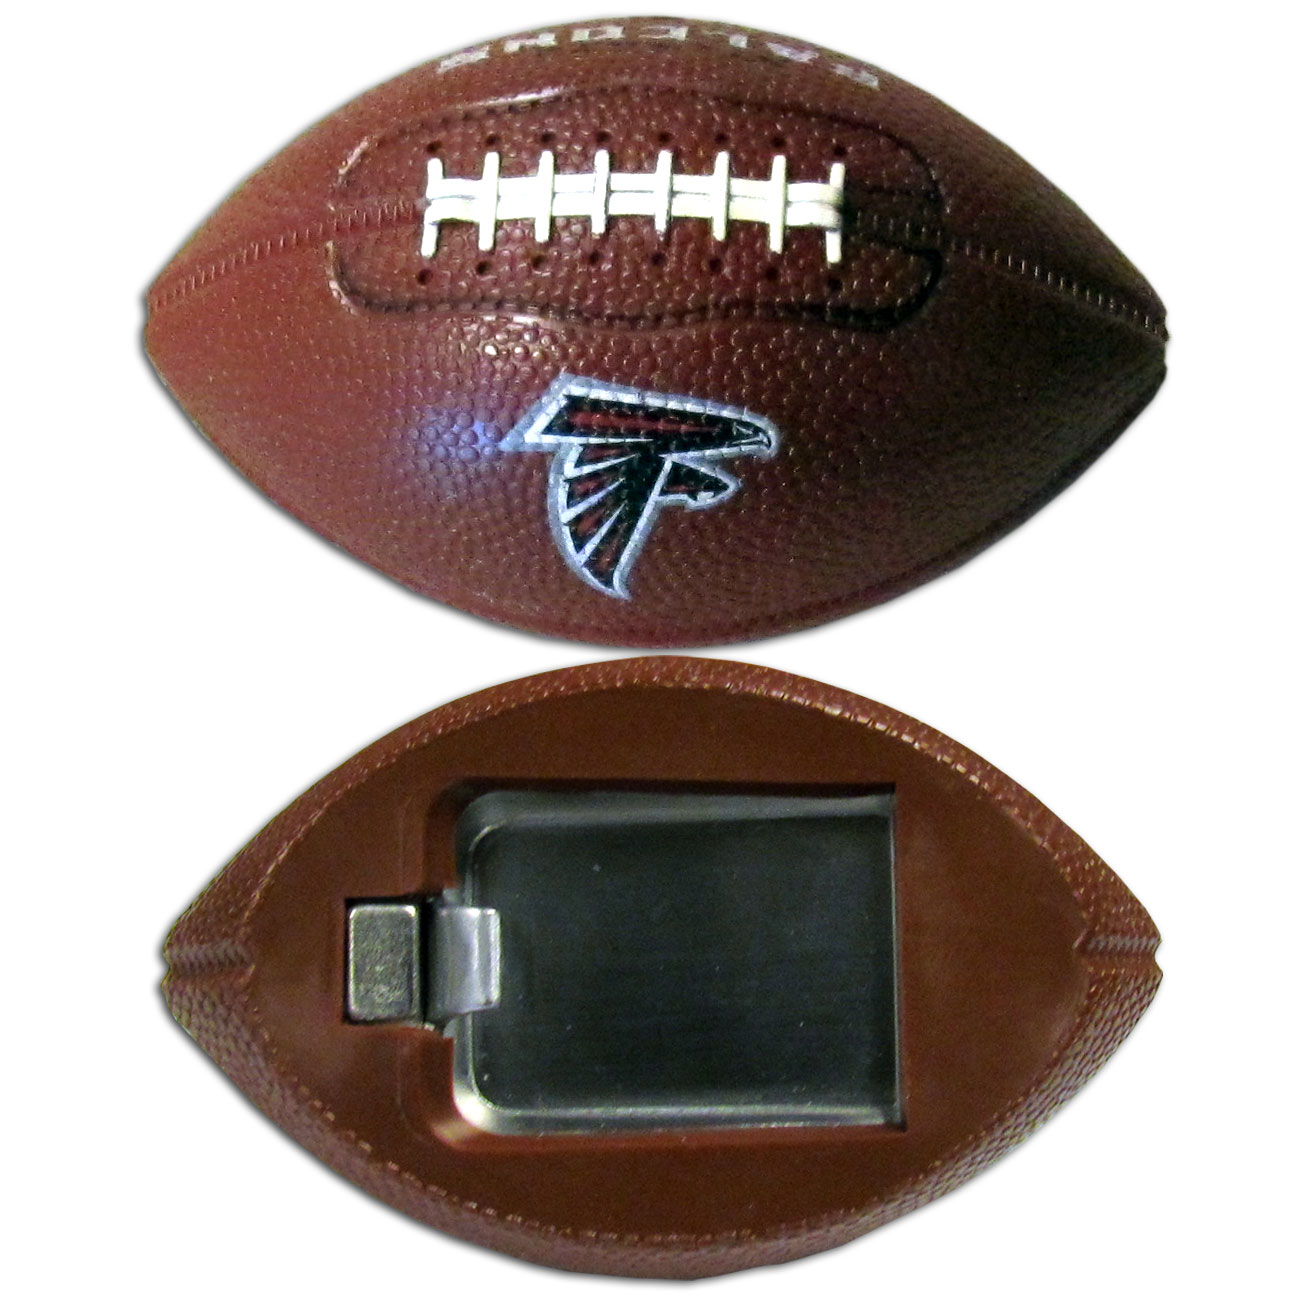 "Atlanta Falcons Bottle Opener Magnet - Our footballer Atlanta Falcons bottle opener magnets are 3.5"" 3D football magnets with bottle openers. The football replica magnets keep a bottle opener in handy while showing off your team pride! Officially licensed NFL product Licensee: Siskiyou Buckle .com"